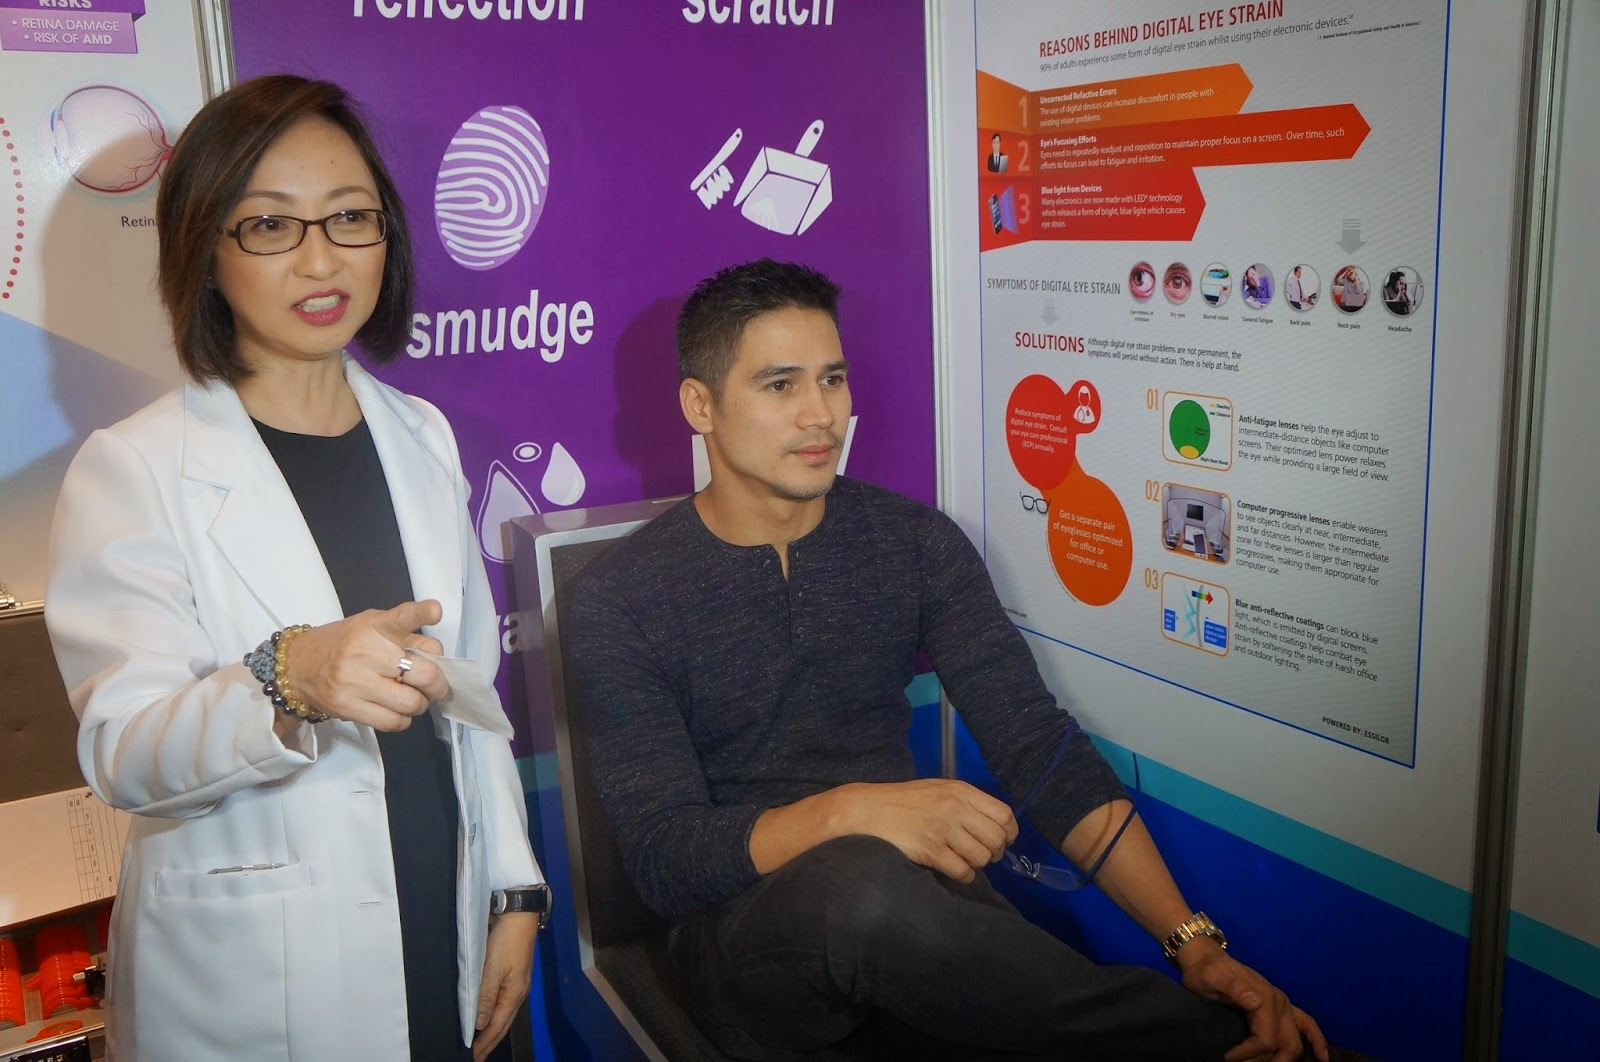 5b6972b4d Piolo Pascual is Essilor Brand Ambassador Campaigning for Healthy Vision